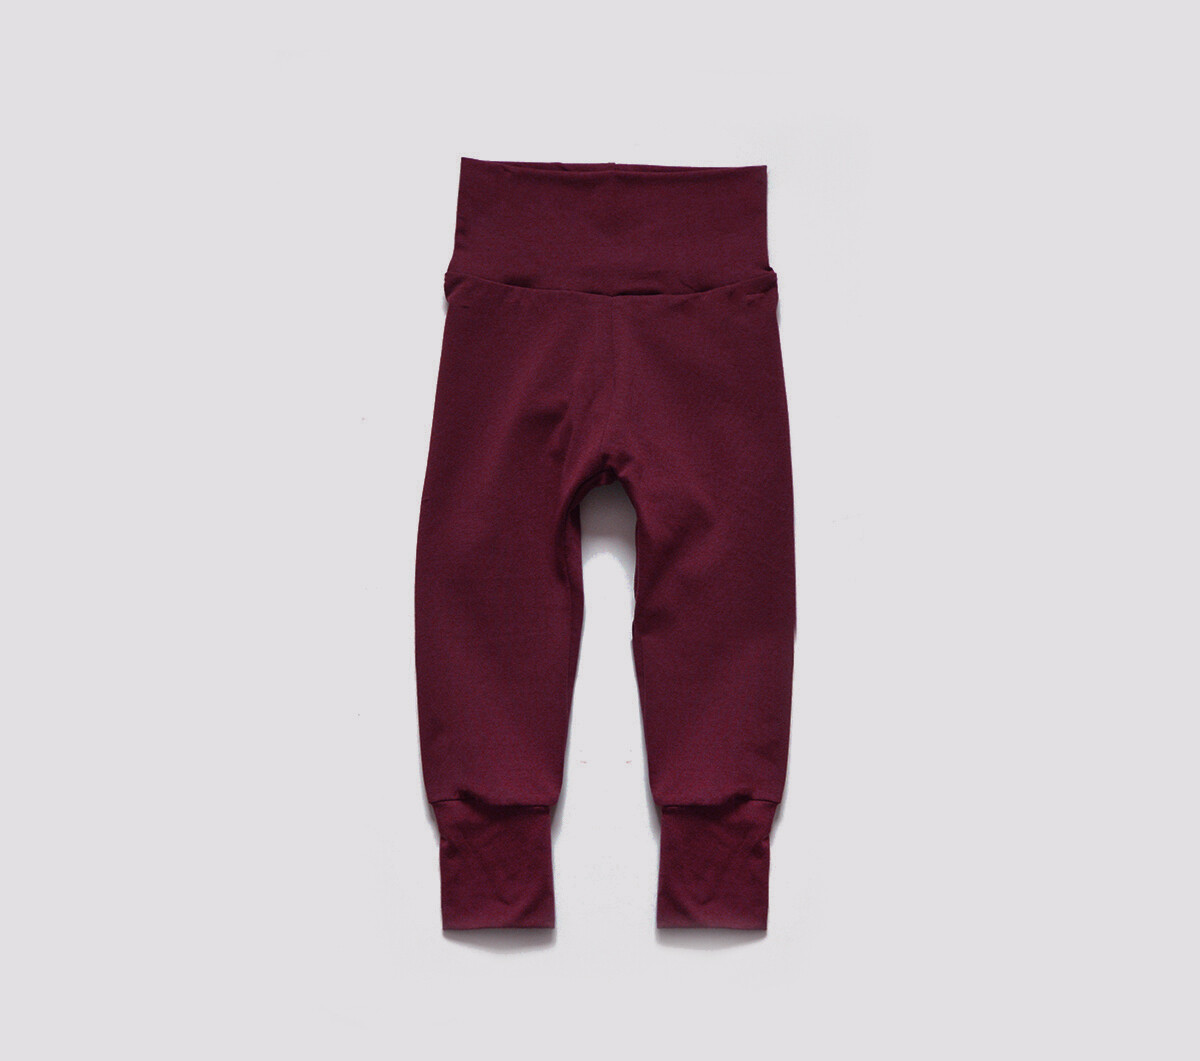 Bamboo Little Sprout Pants™    Grow With Me Leggings   Brick